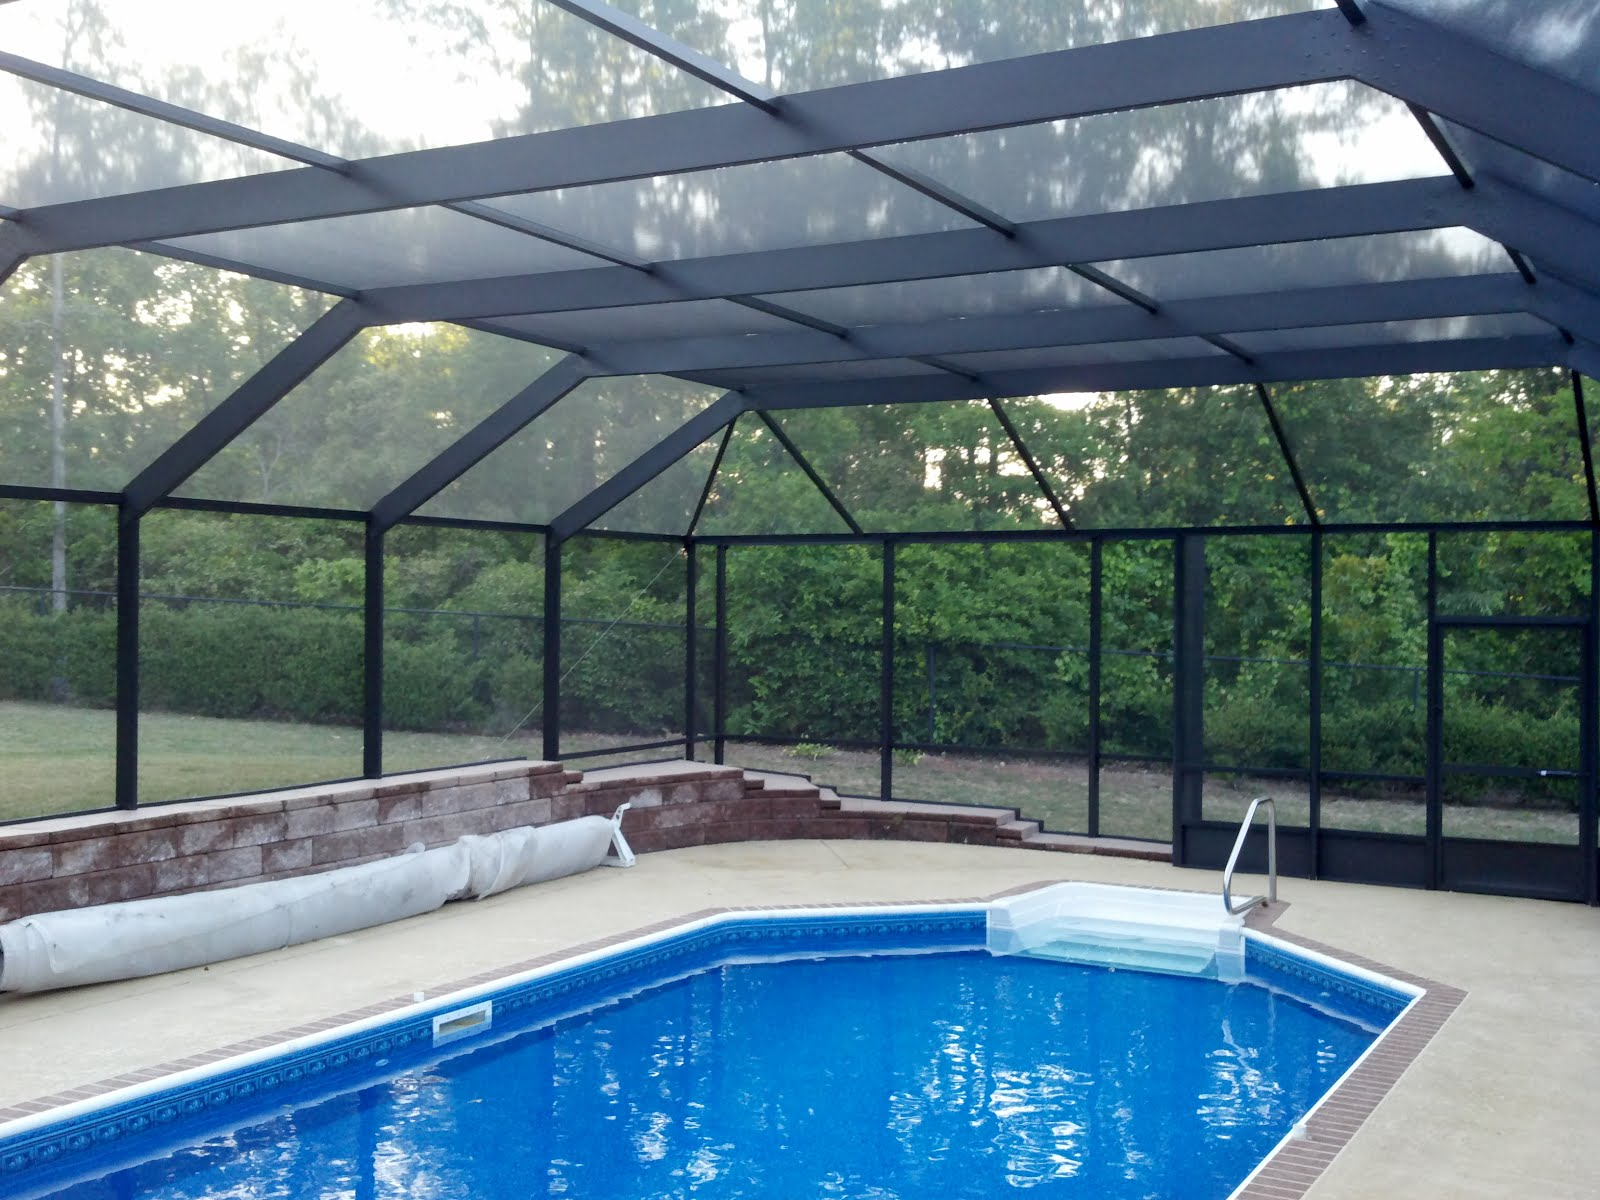 Pool enclosures usa pool enclosures in north georgia - Swimming pool screen enclosures cost ...